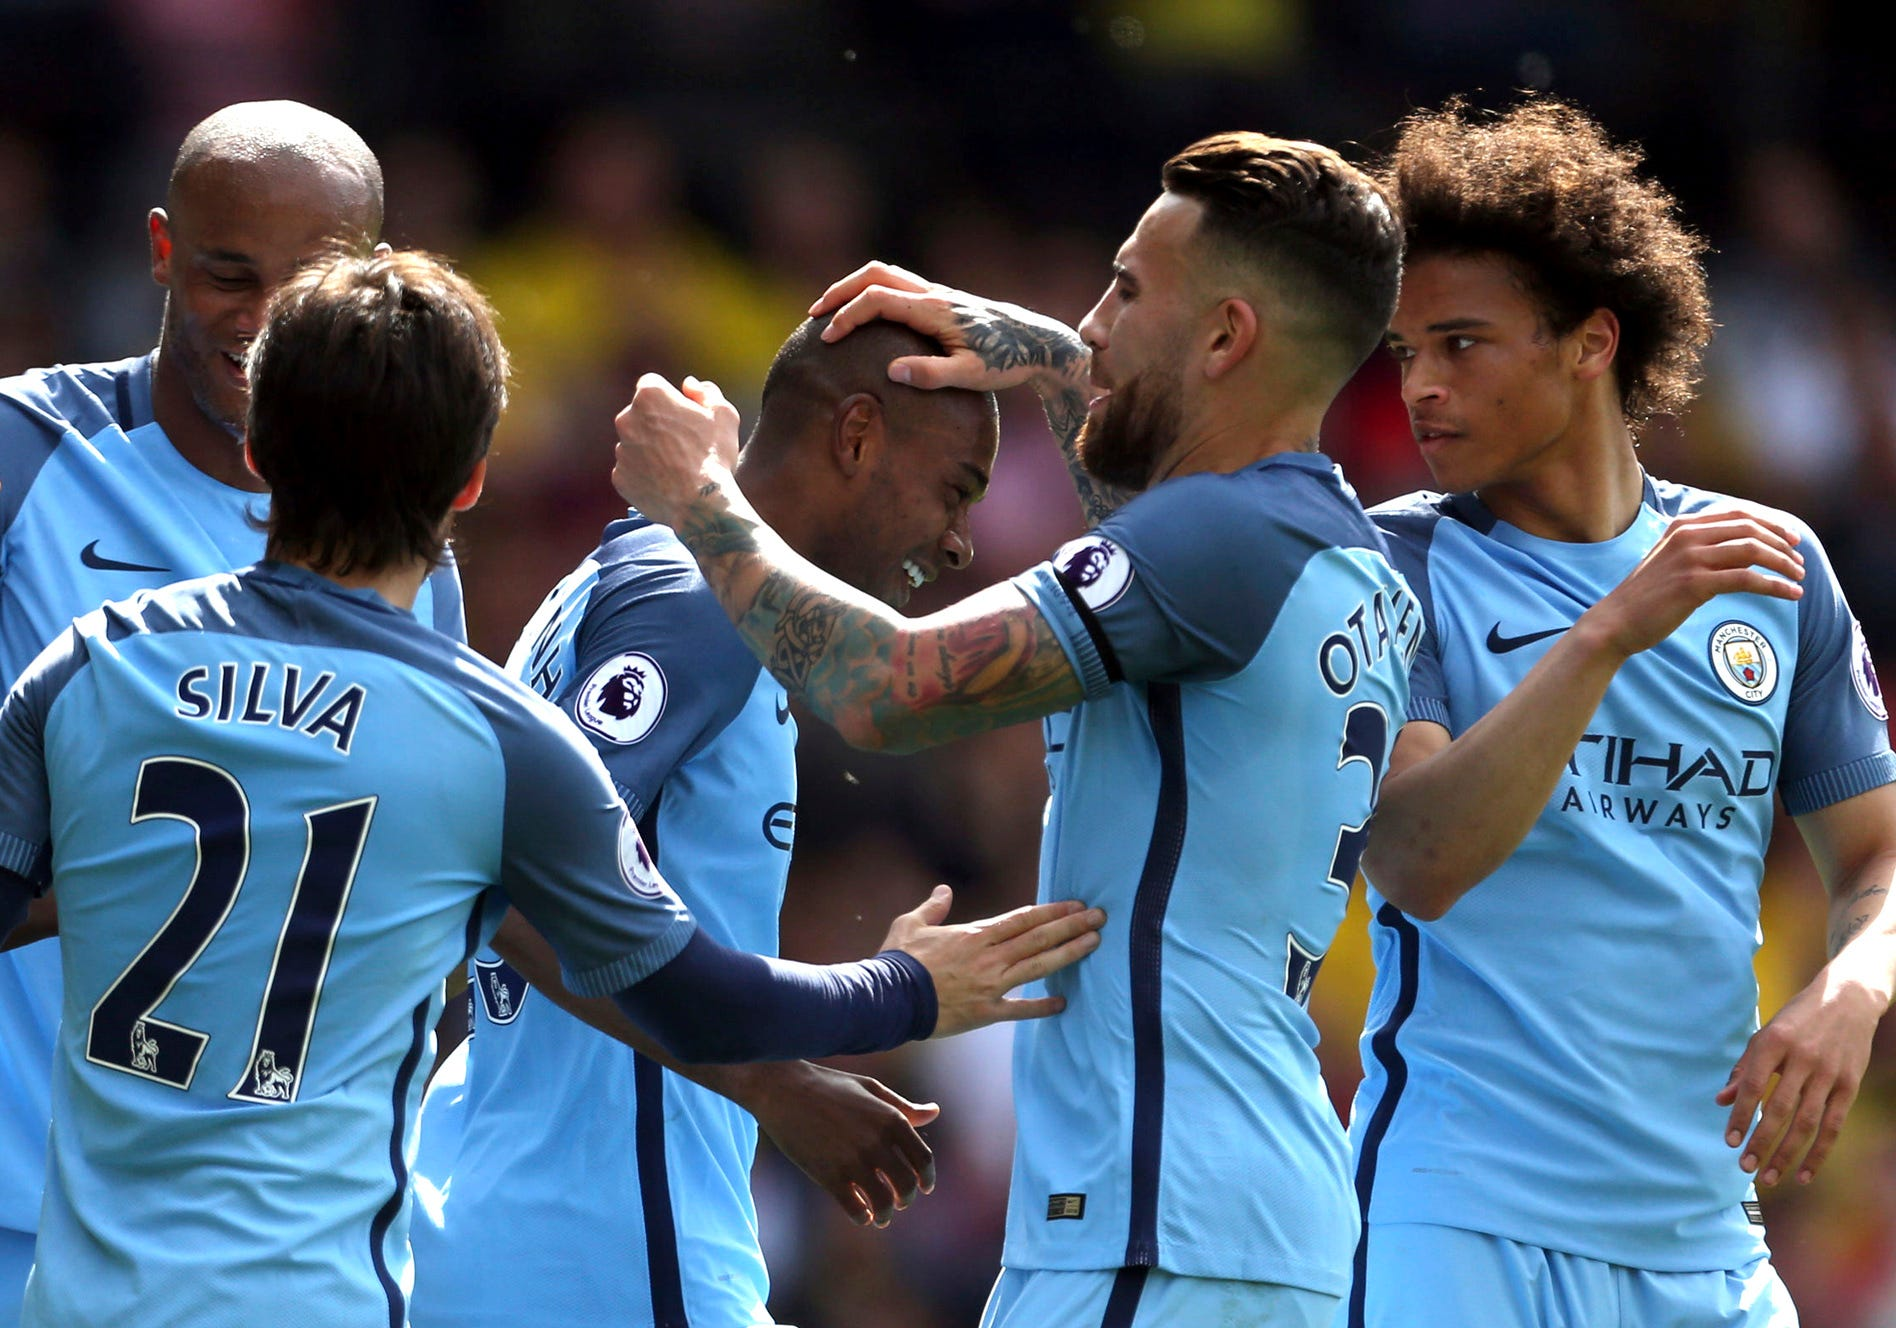 Man City beats Watford 5-0, qualifies for Champions League